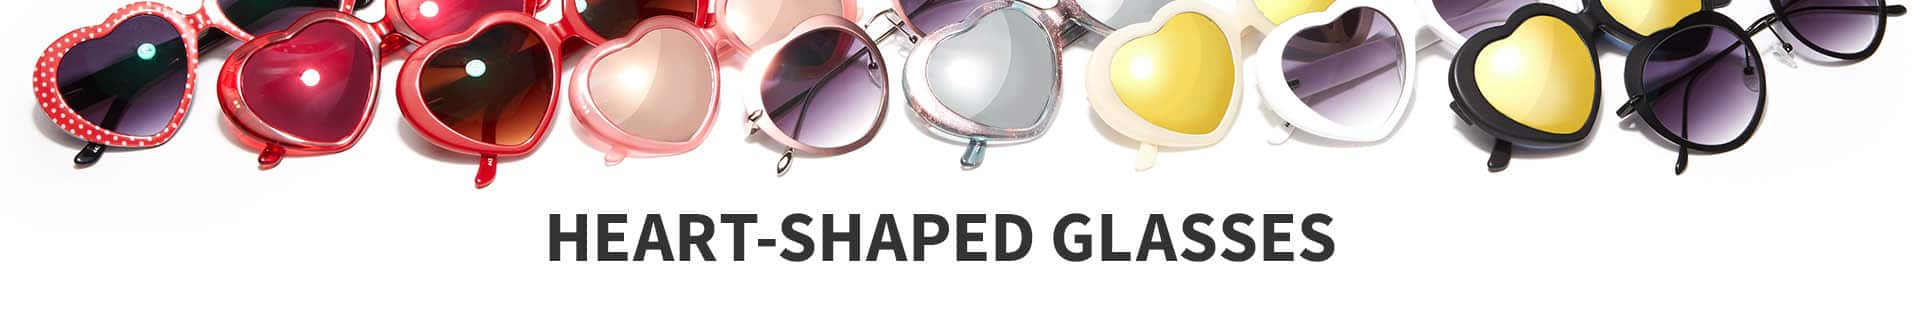 Heart-shaped glasses and sunglasses in a variety of tints and finishes.